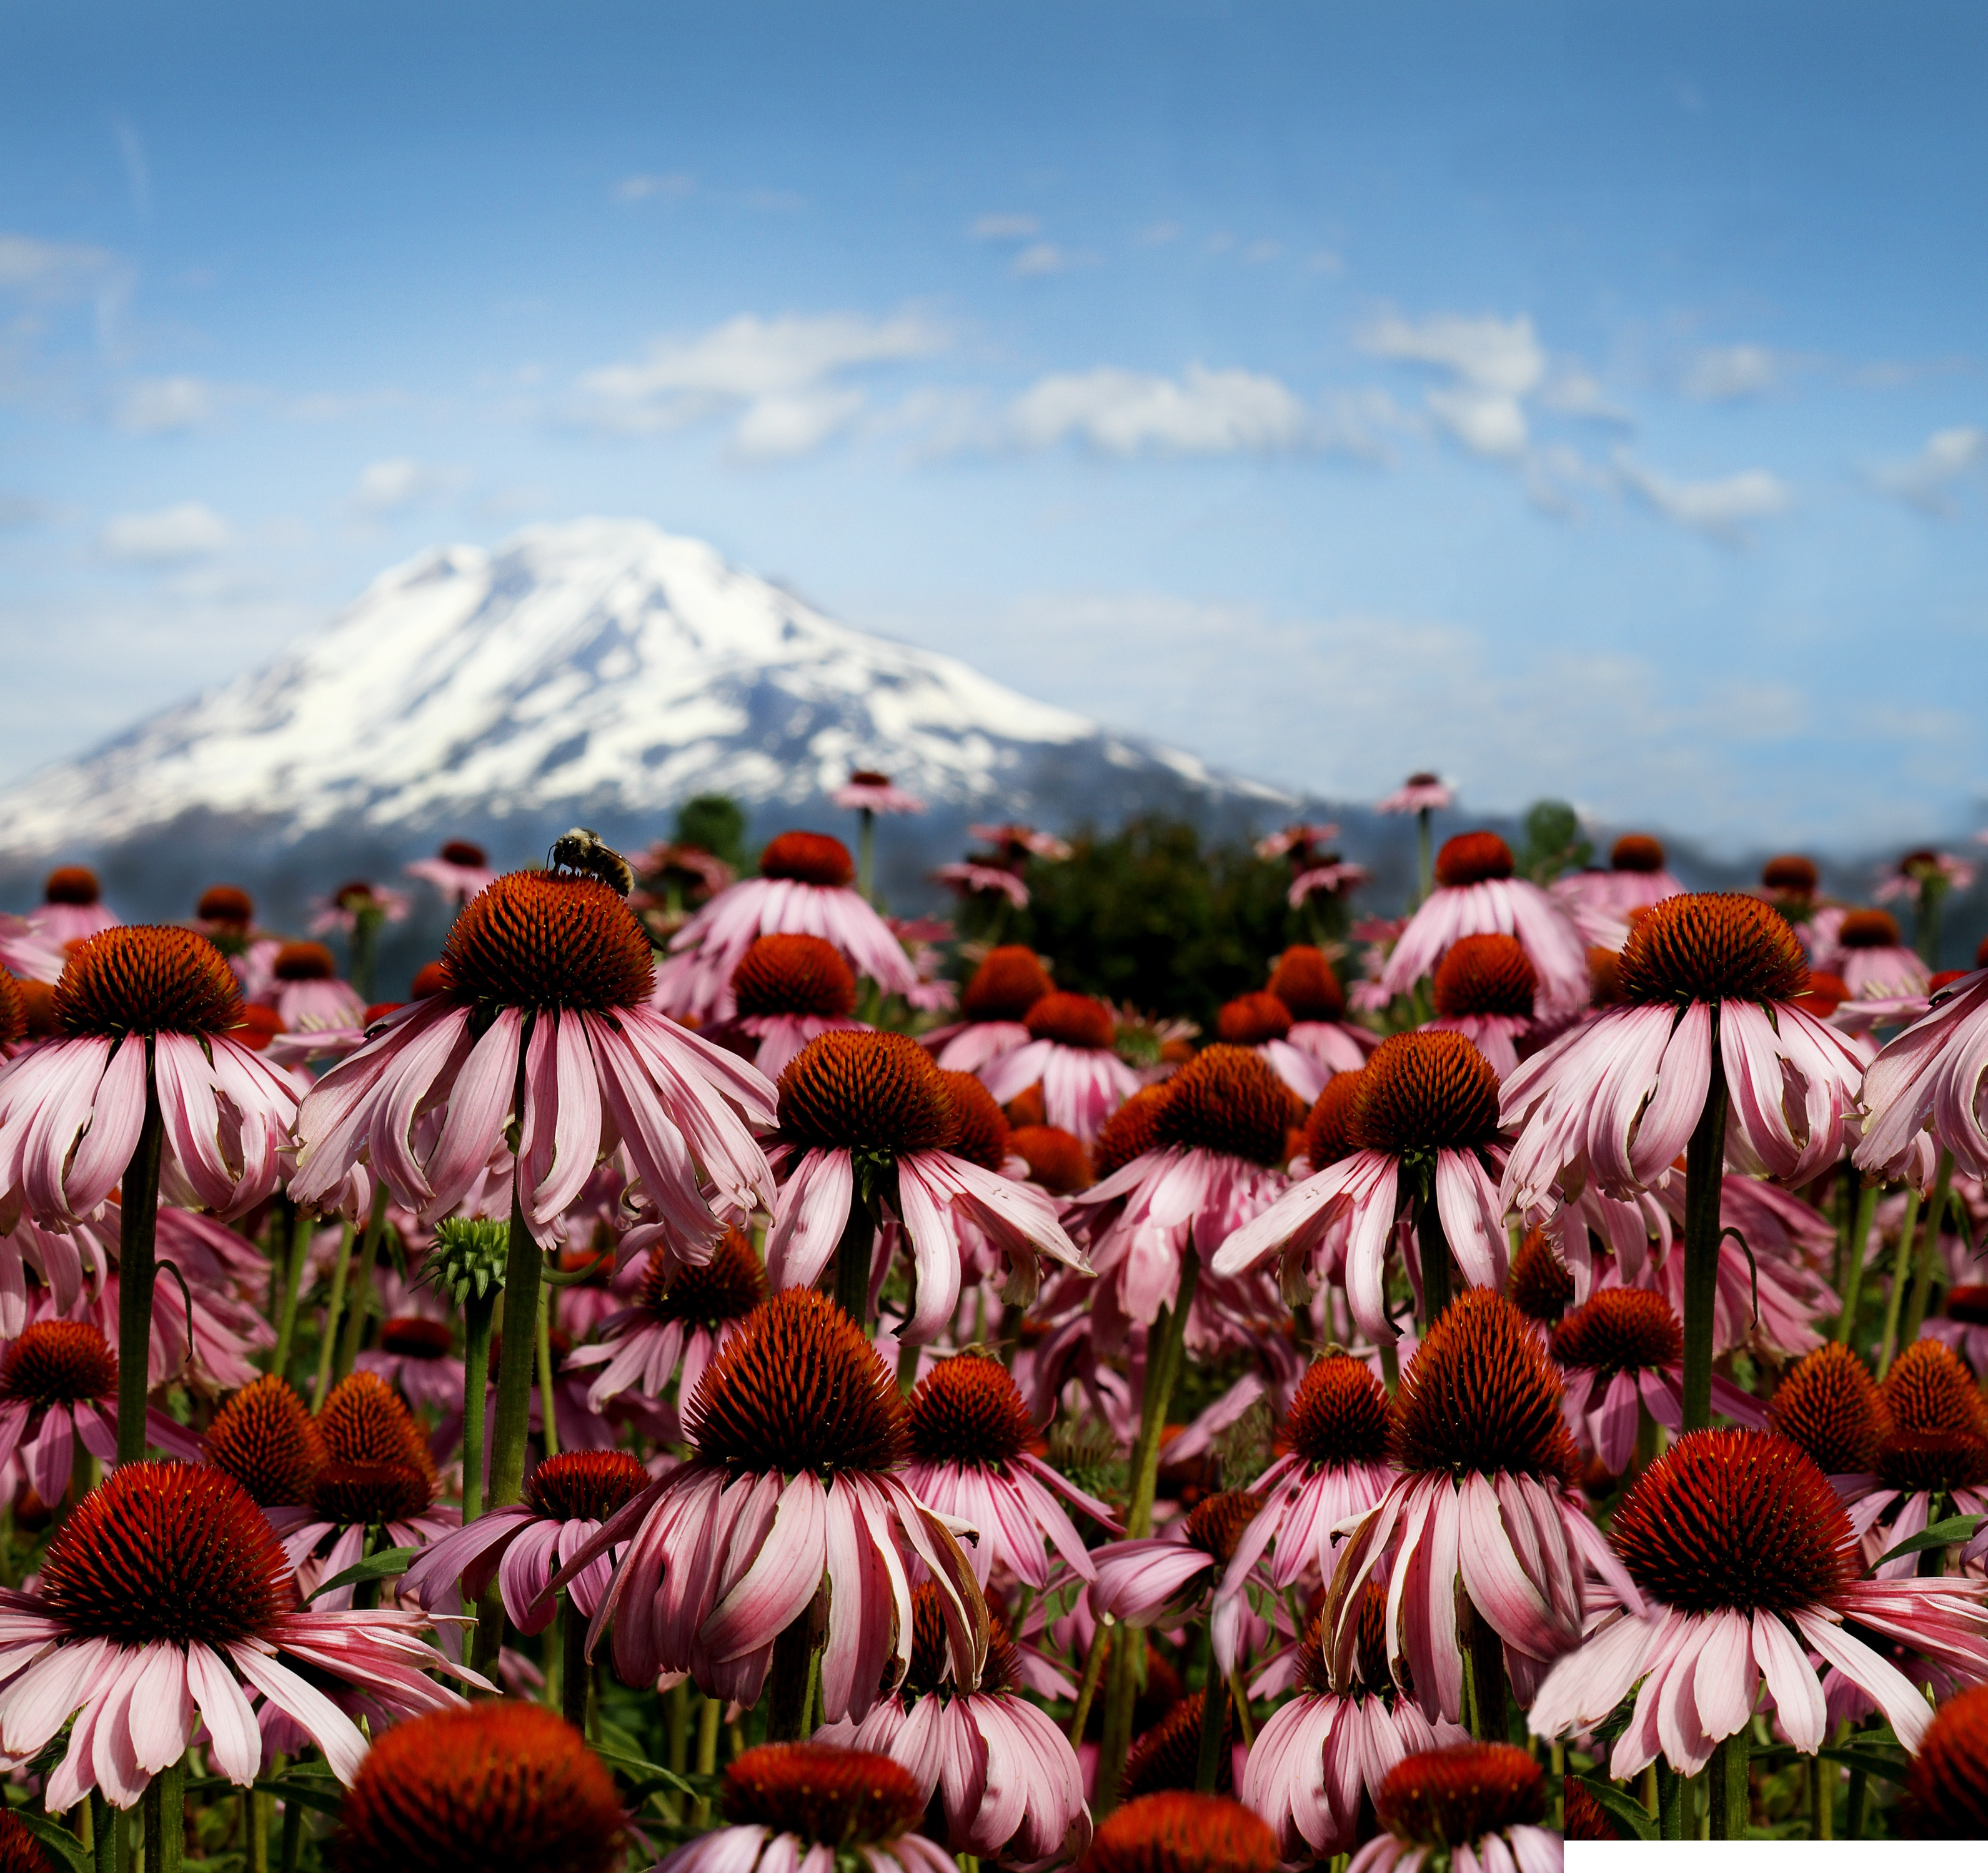 Bee sitting on top of echinacea flower in a field with a mountain in the background